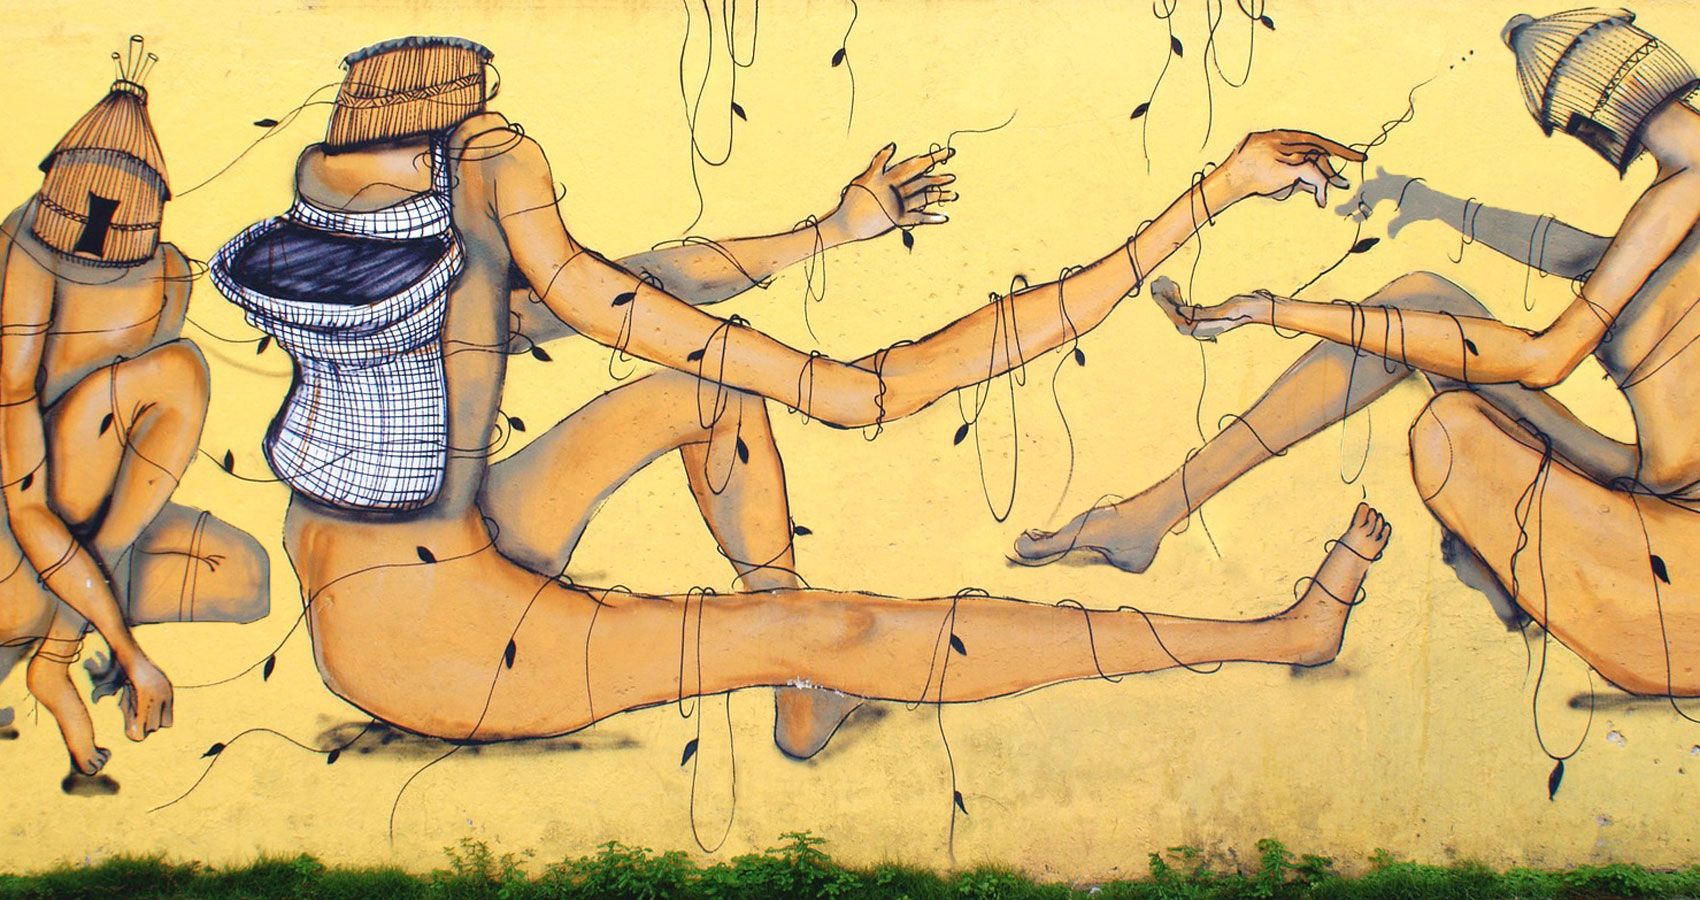 TWO TO TANGO, short story by Dilip Mohapatra at Spillwords.com